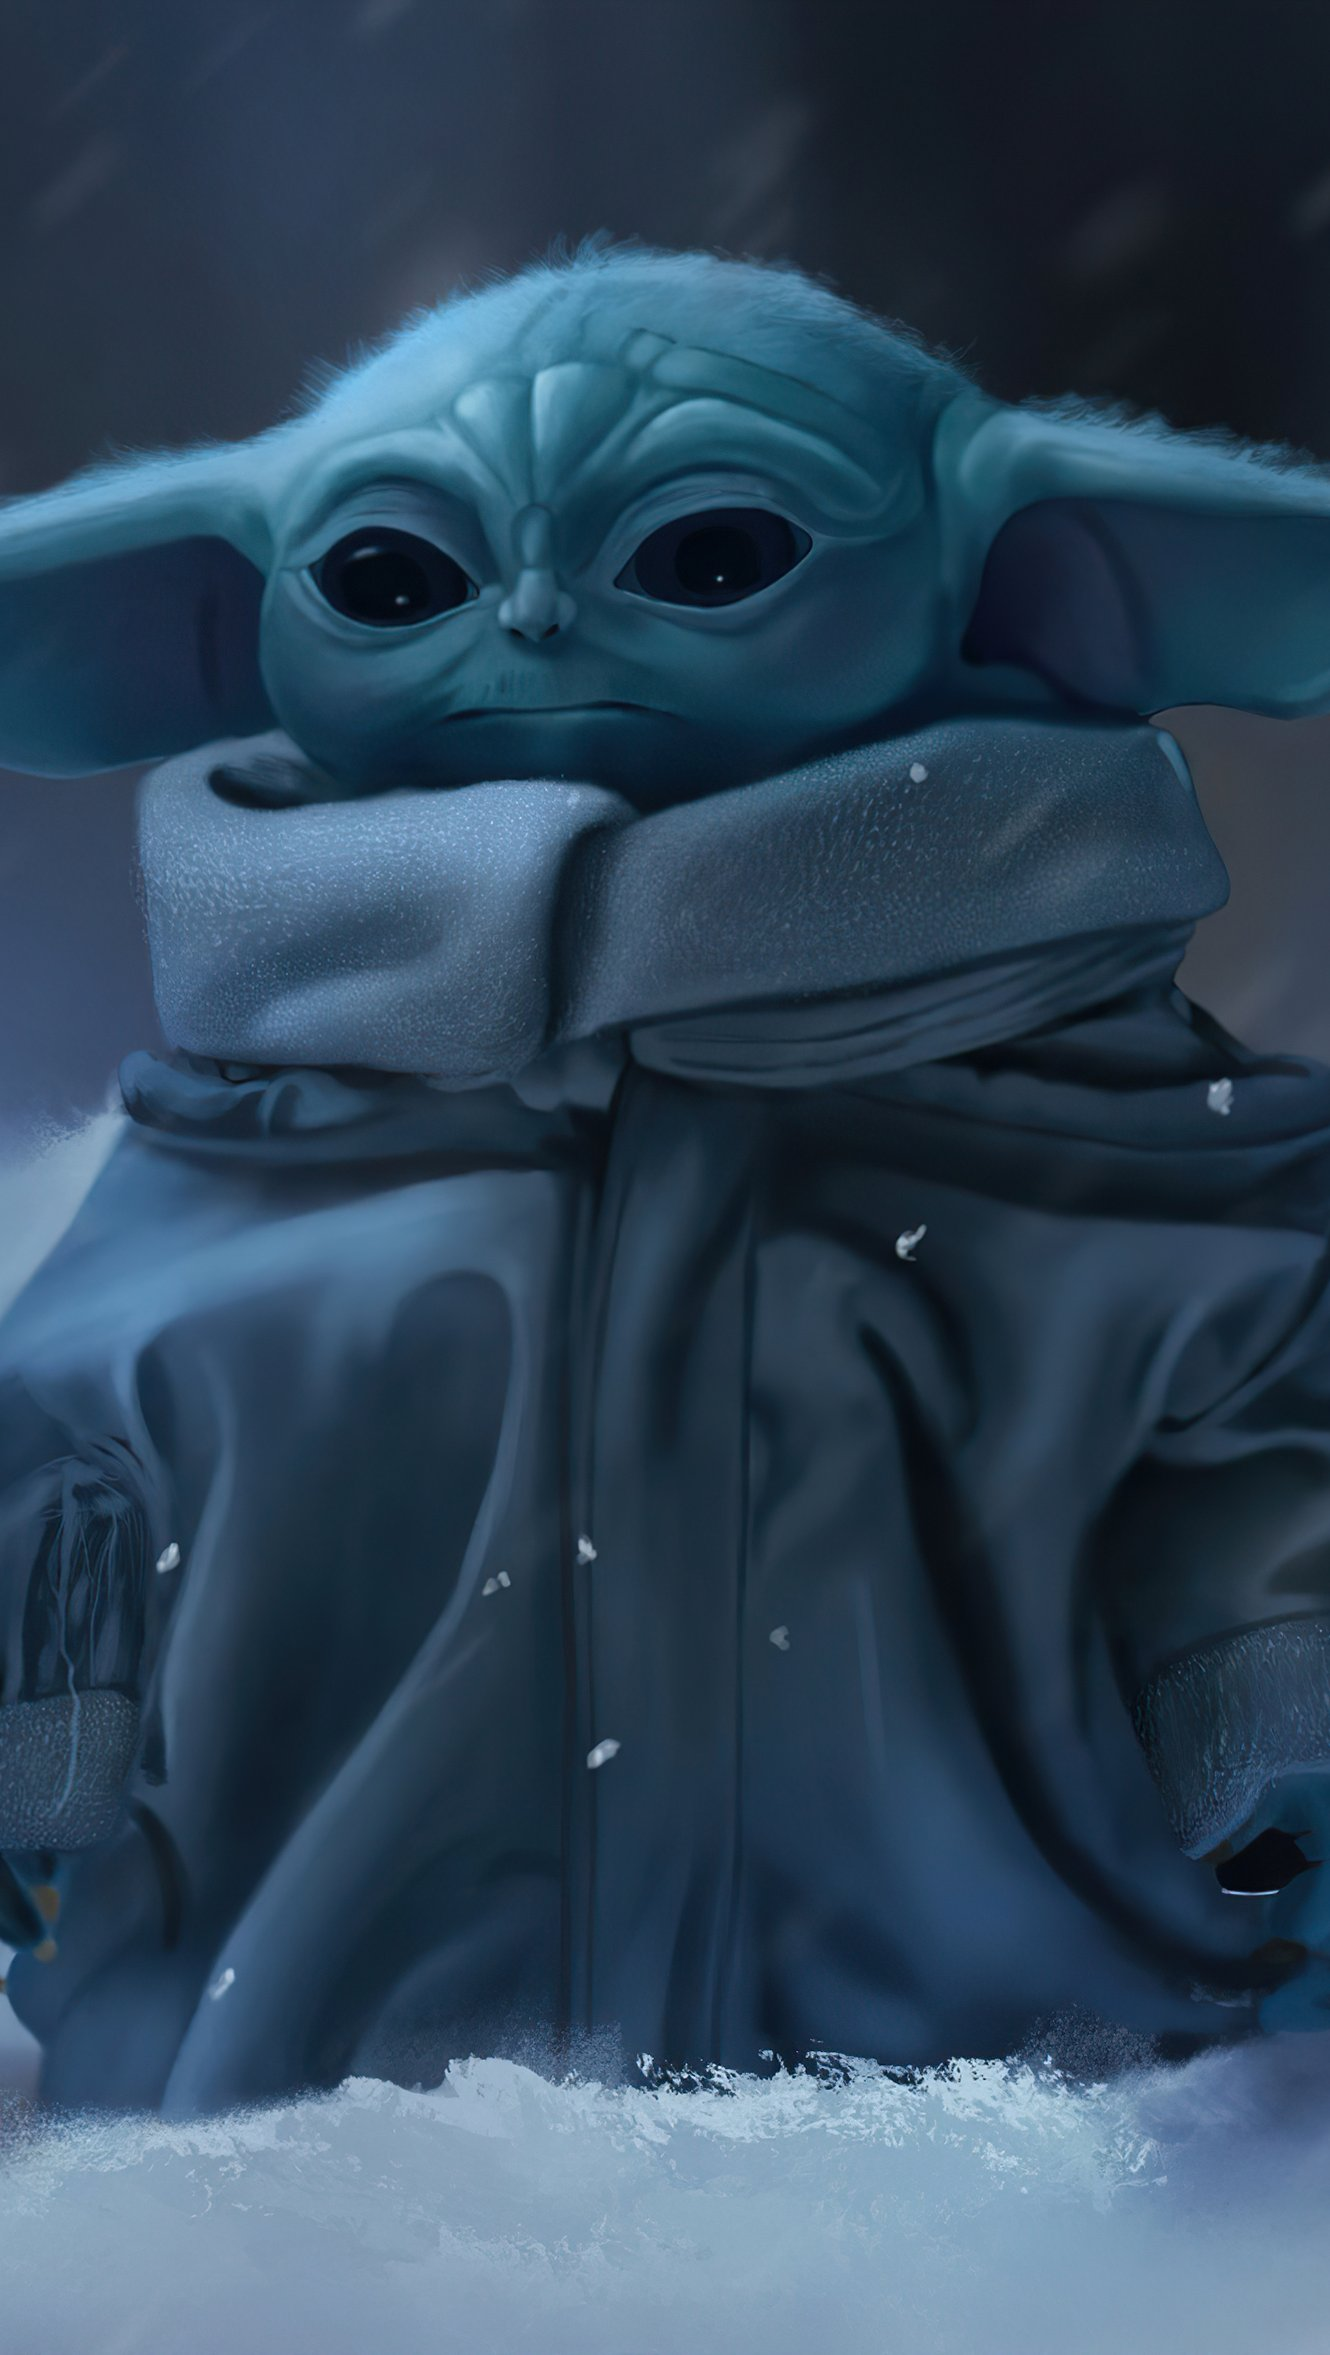 Wallpaper Baby Yoda The Mandalorian Vertical